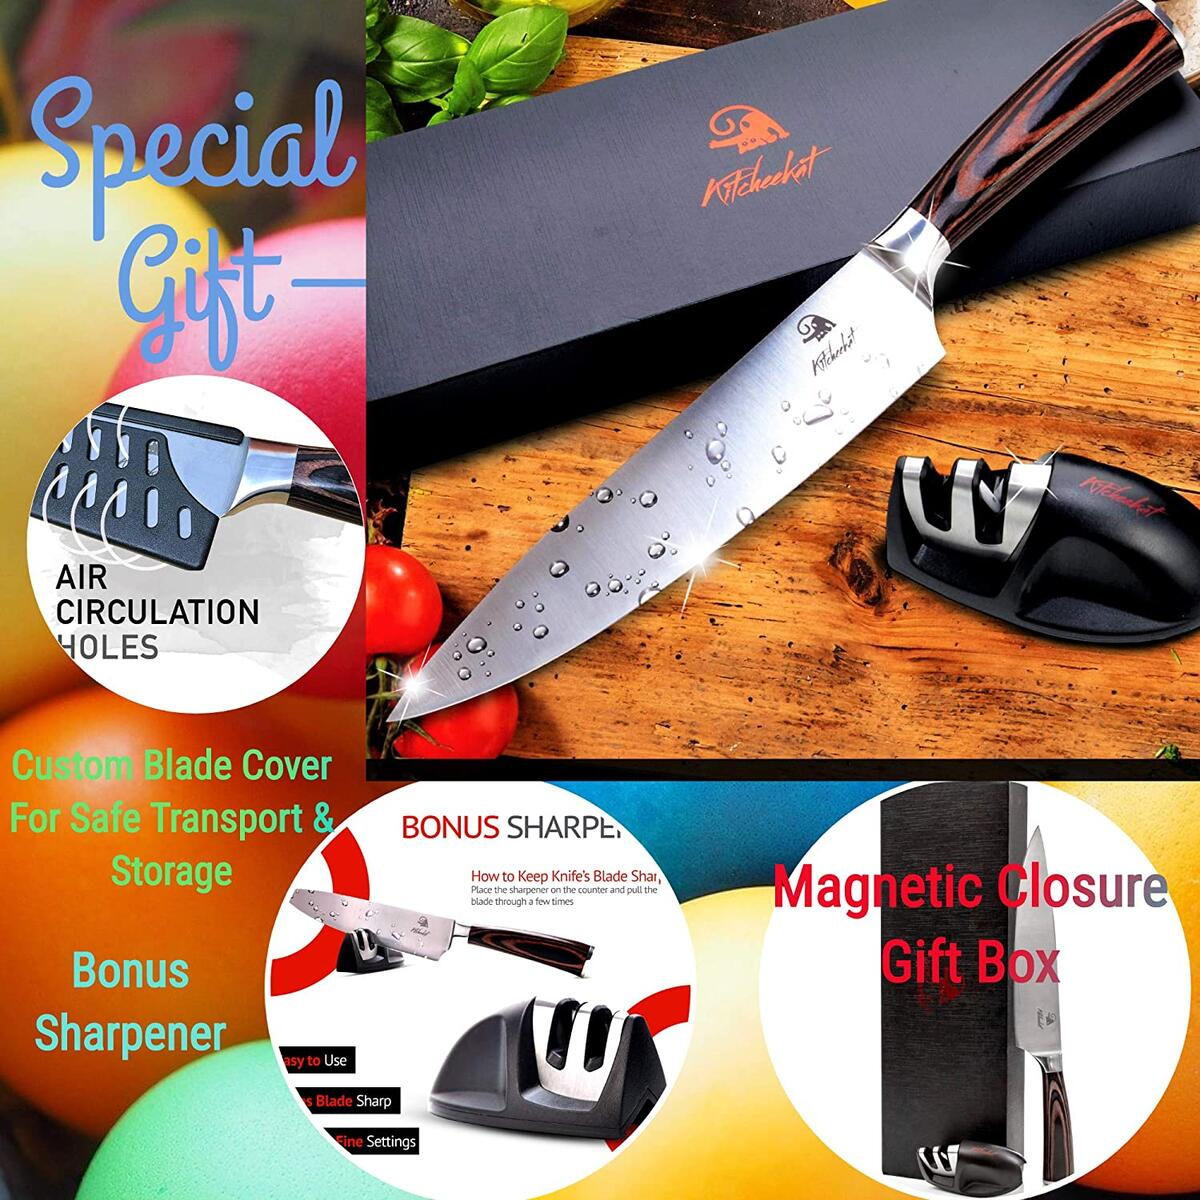 Amazon's Choice Chef's Knife 8 Inch Professional Stainless Steel |Bonus FREE Sharpener|Bonus Free Blade Cover Protector|Free Gift Box All Included!